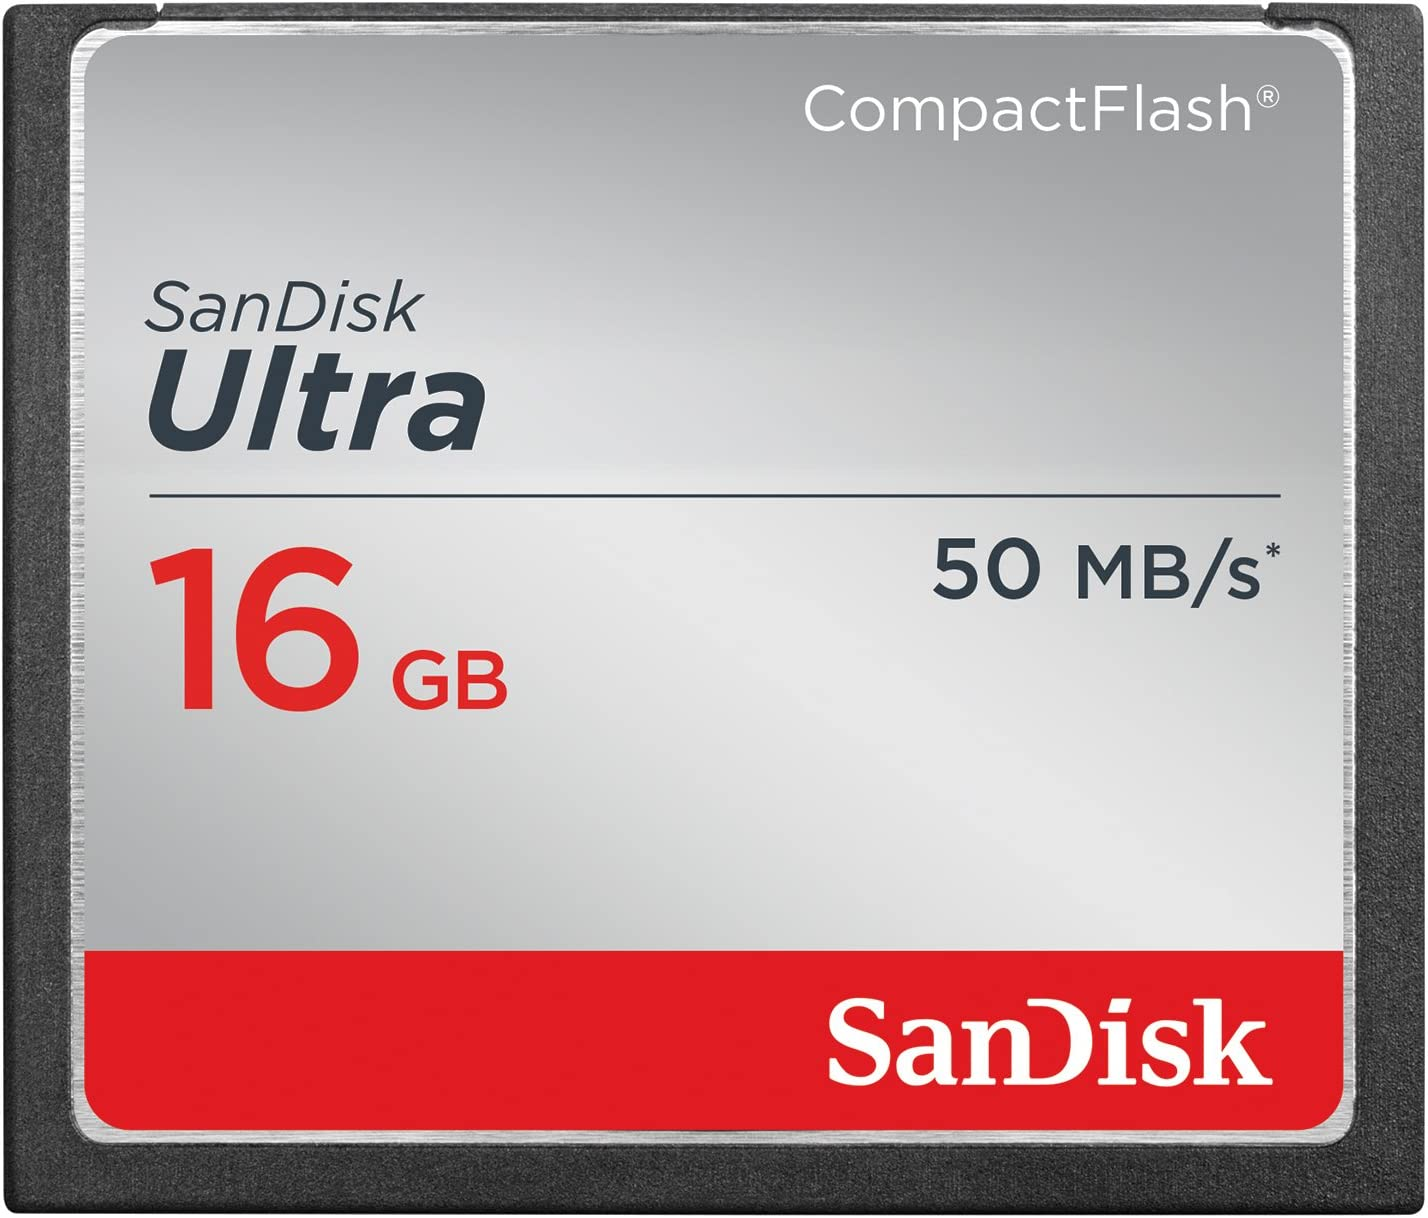 SanDisk Ultra 16GB Compact Flash Memory Card Speed Up To 50MB/s, Frustration-Free Packaging- SDCFHS-016G-AFFP (Label May Change)